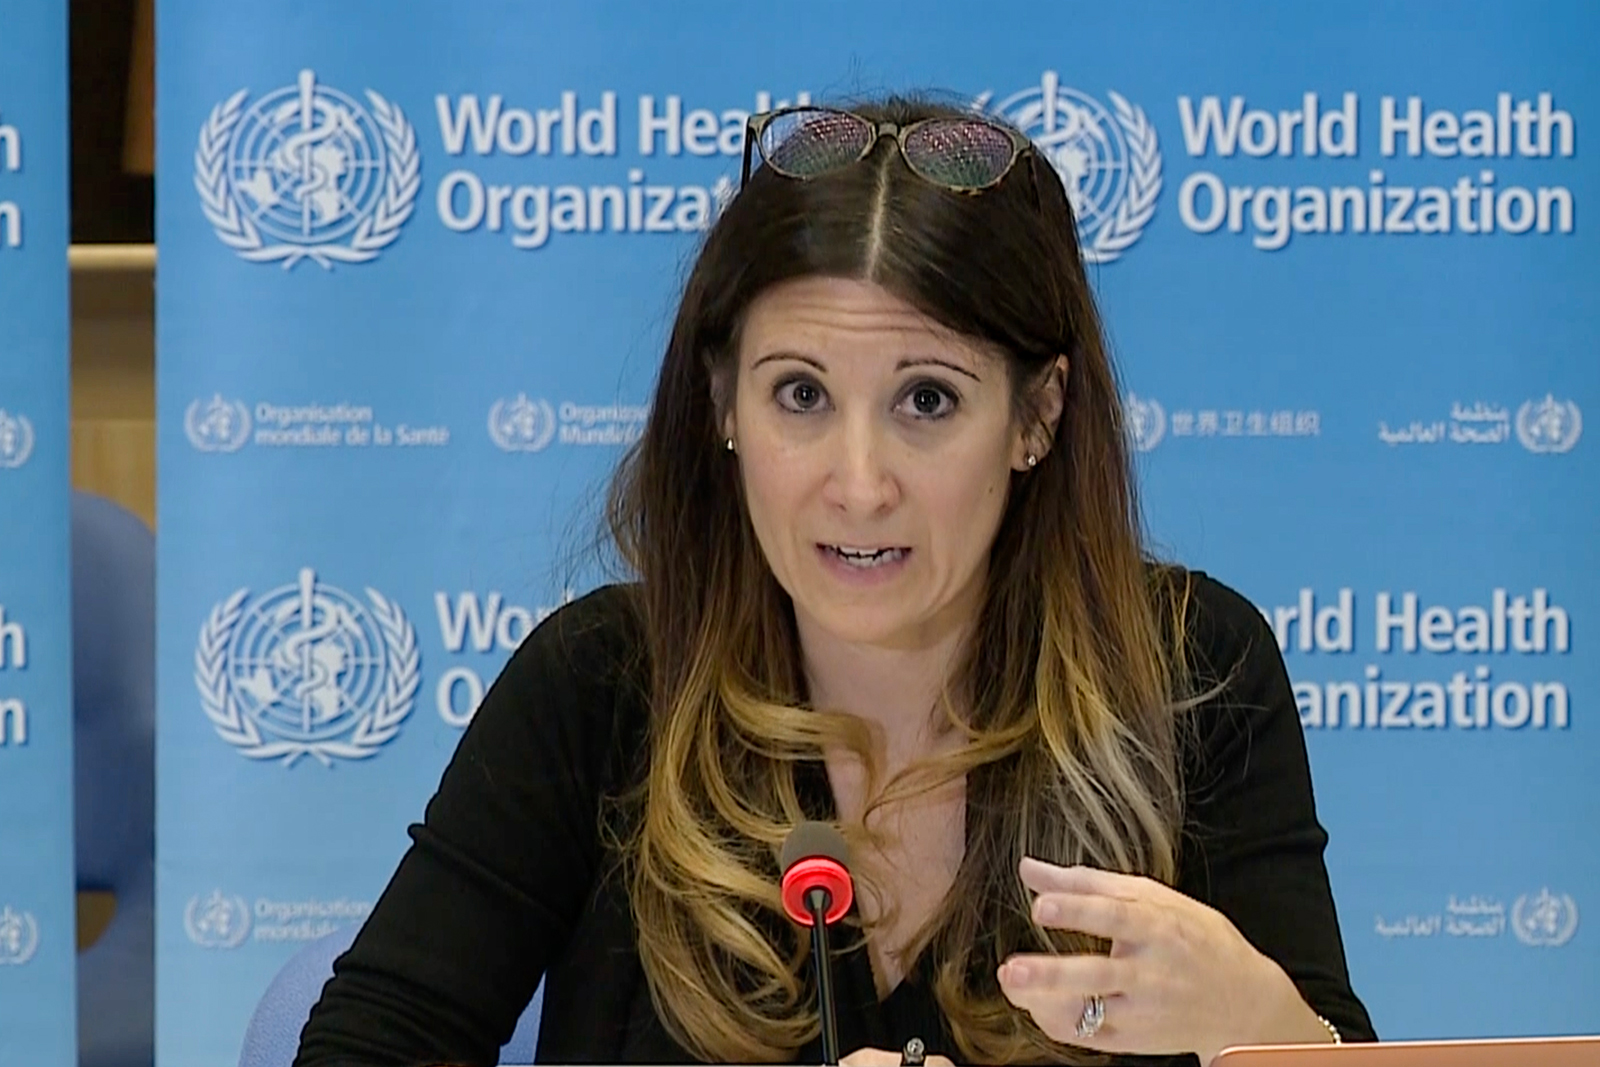 A screenshot taken from a video released by the World Health Organization shows WHO technical leader Maria Van Kerkhove speaking at a virtual news briefing on COVID-19 from WHO headquarters in Geneva on Monday, April 6th.